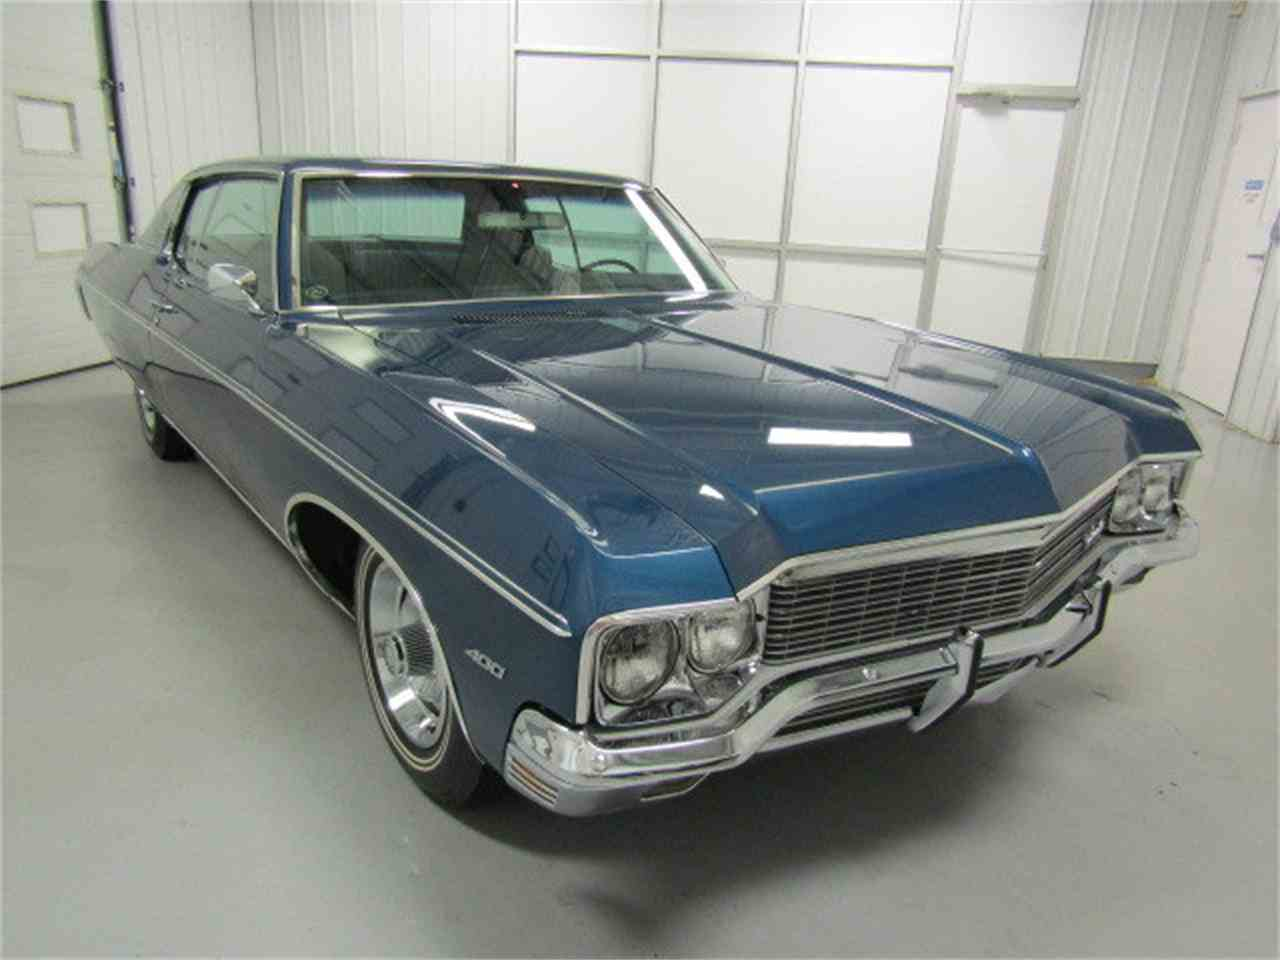 All Chevy chevy 1970 : All Chevy » 1970 Chevrolet Caprice - Old Chevy Photos Collection ...